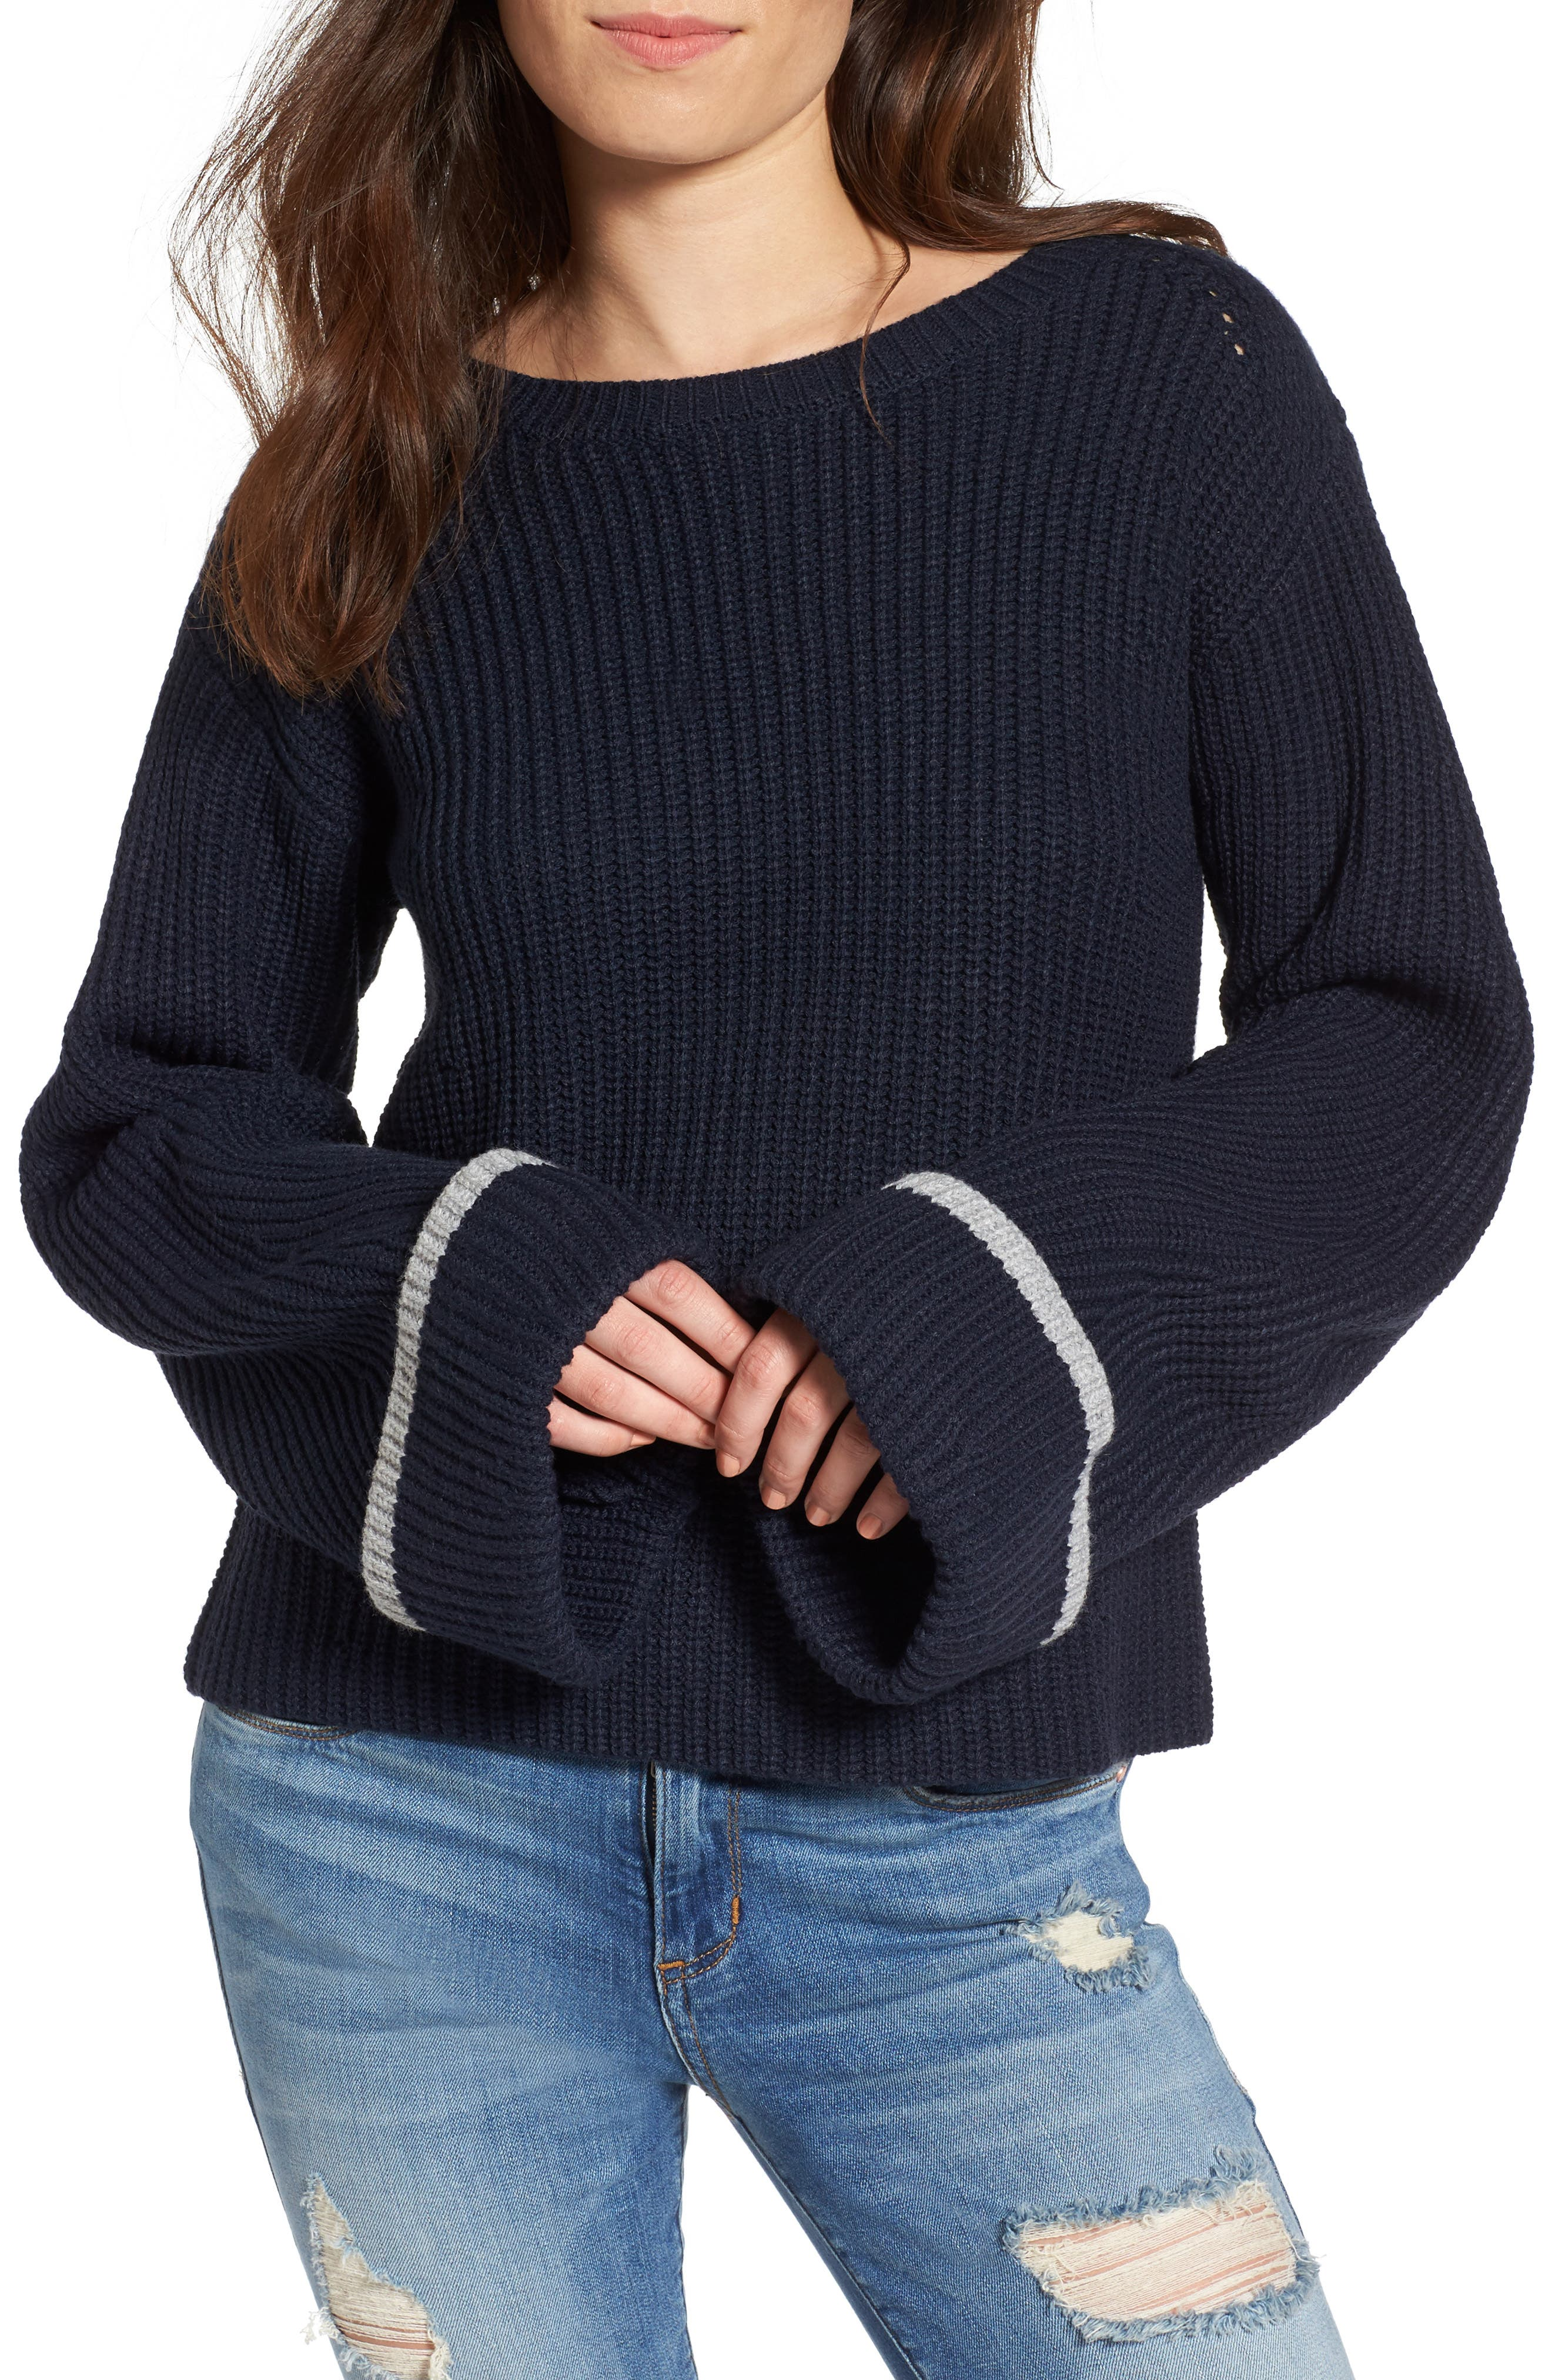 Alternate Image 1 Selected - Love by Design Colorblock Bell Sleeve Sweater